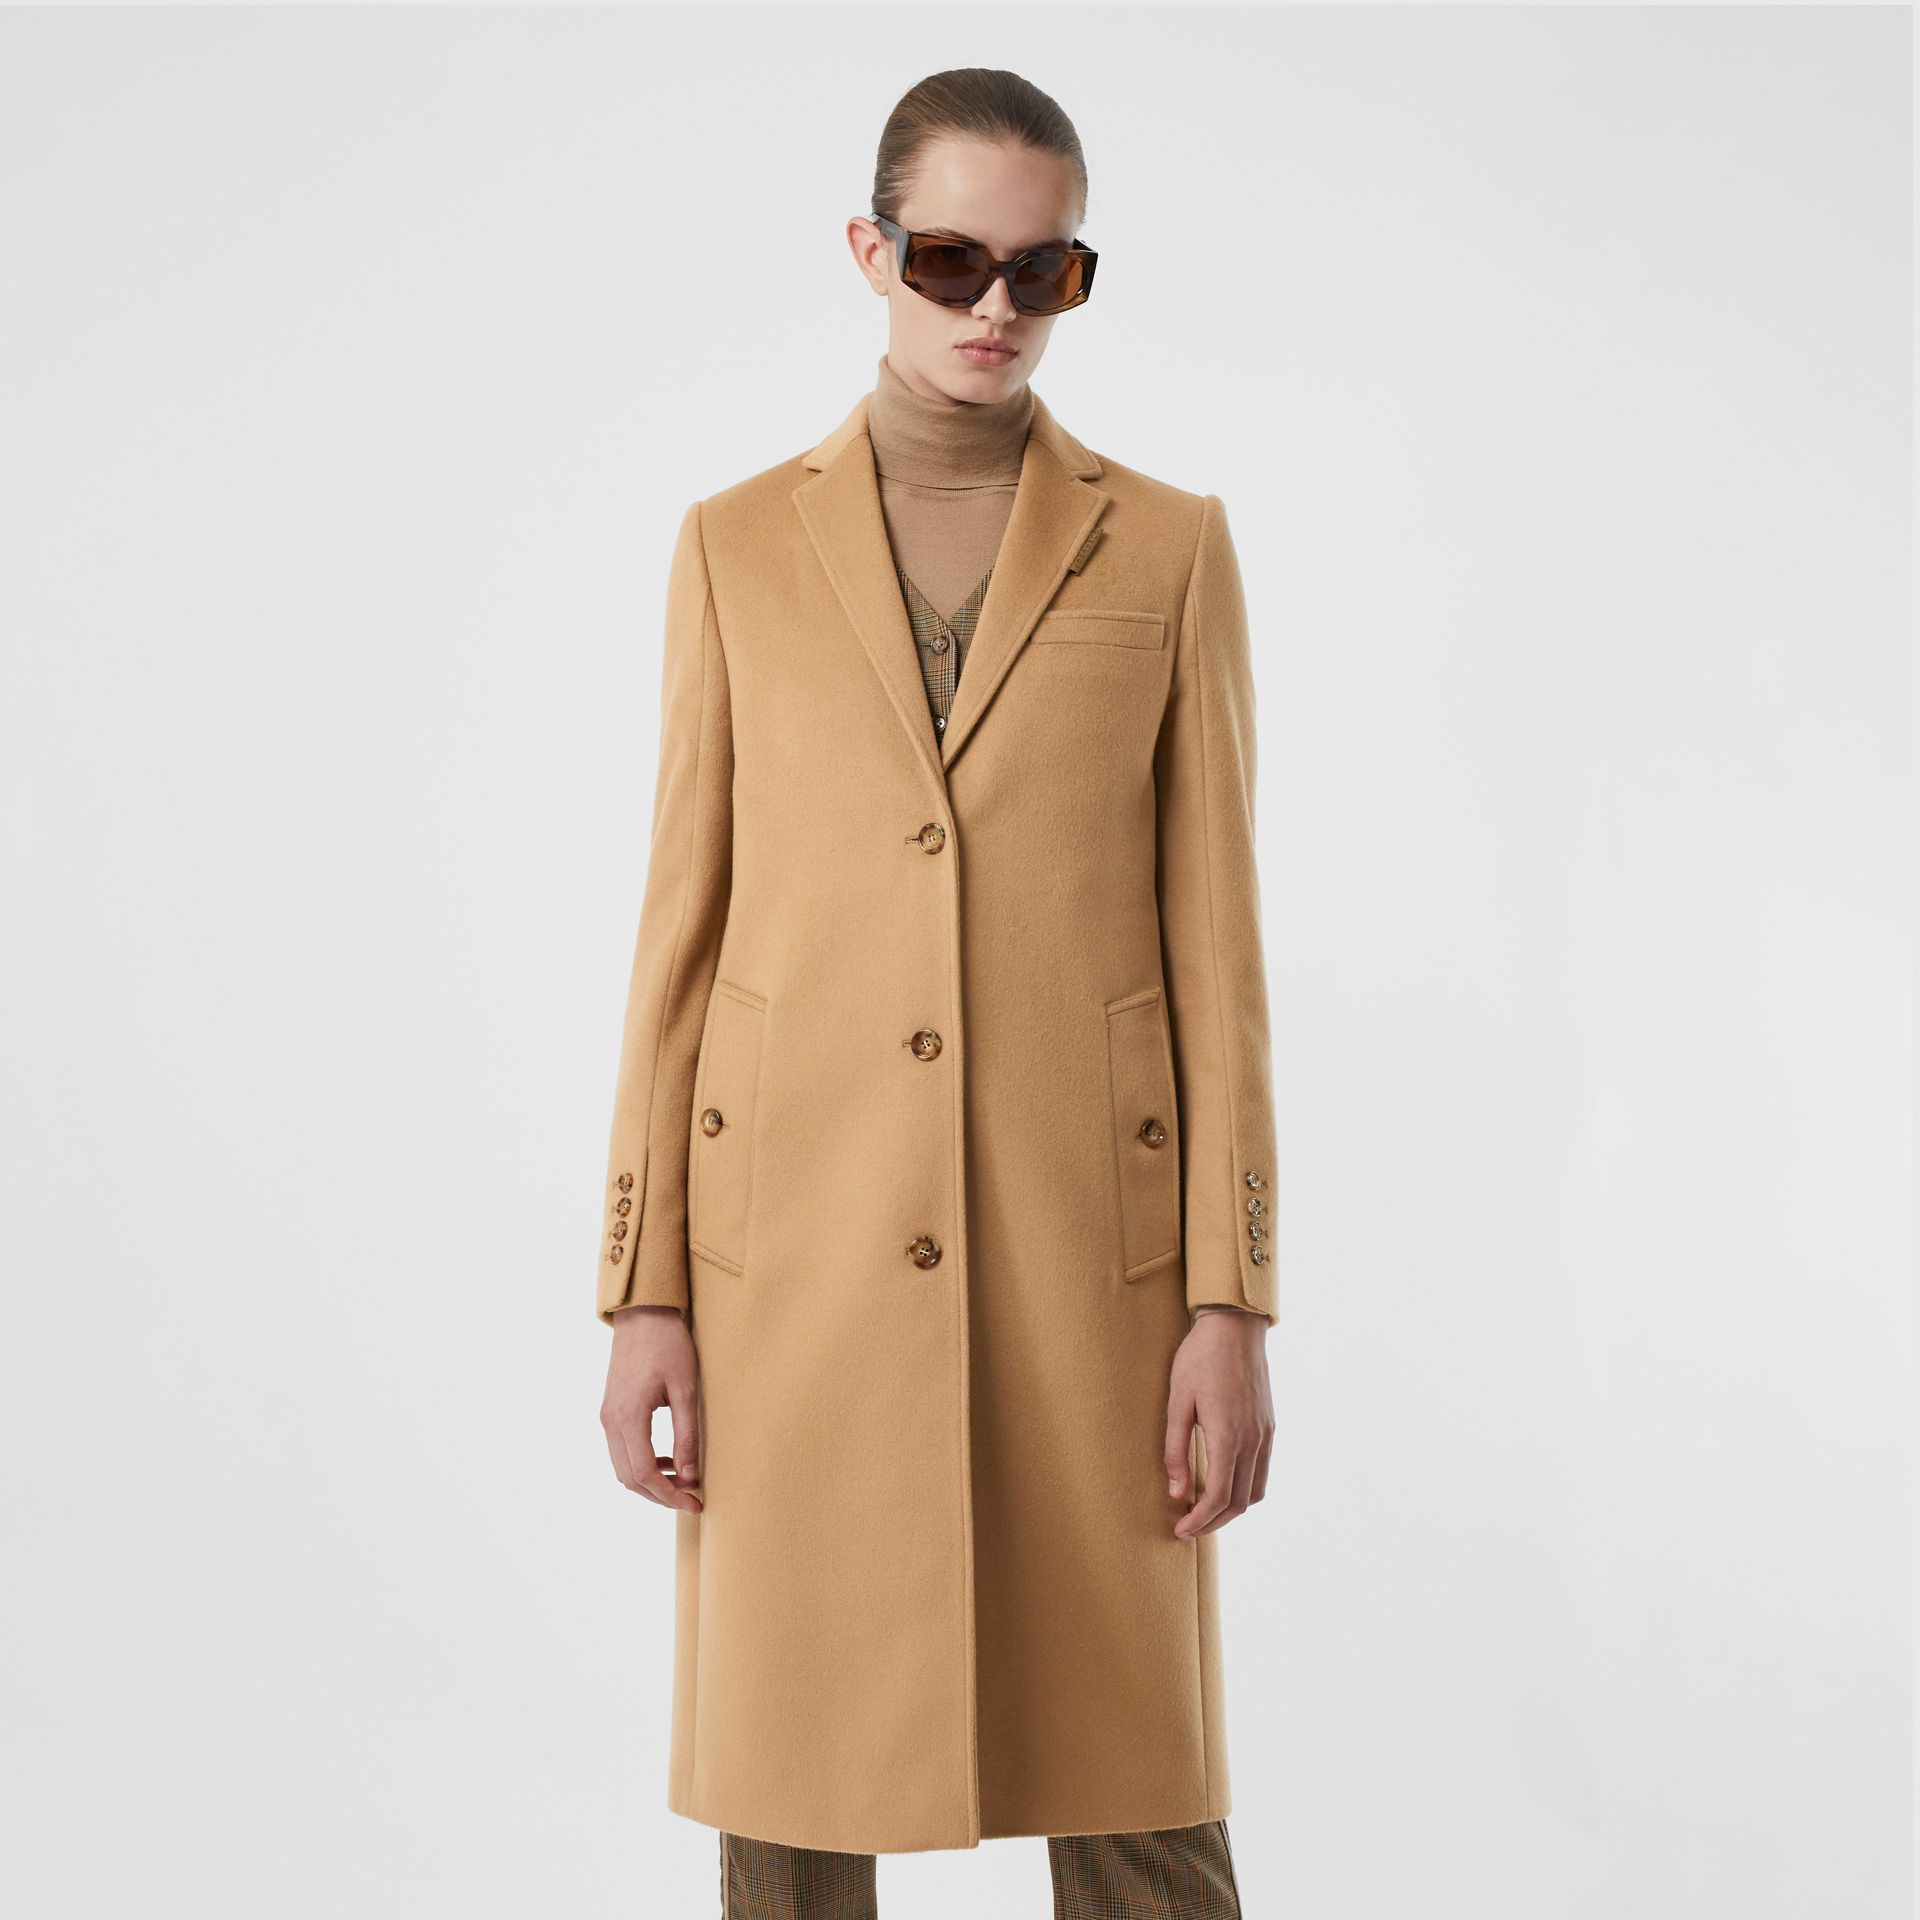 Wool Cashmere Tailored Coat in Light Camel - Women | Burberry - gallery image 6